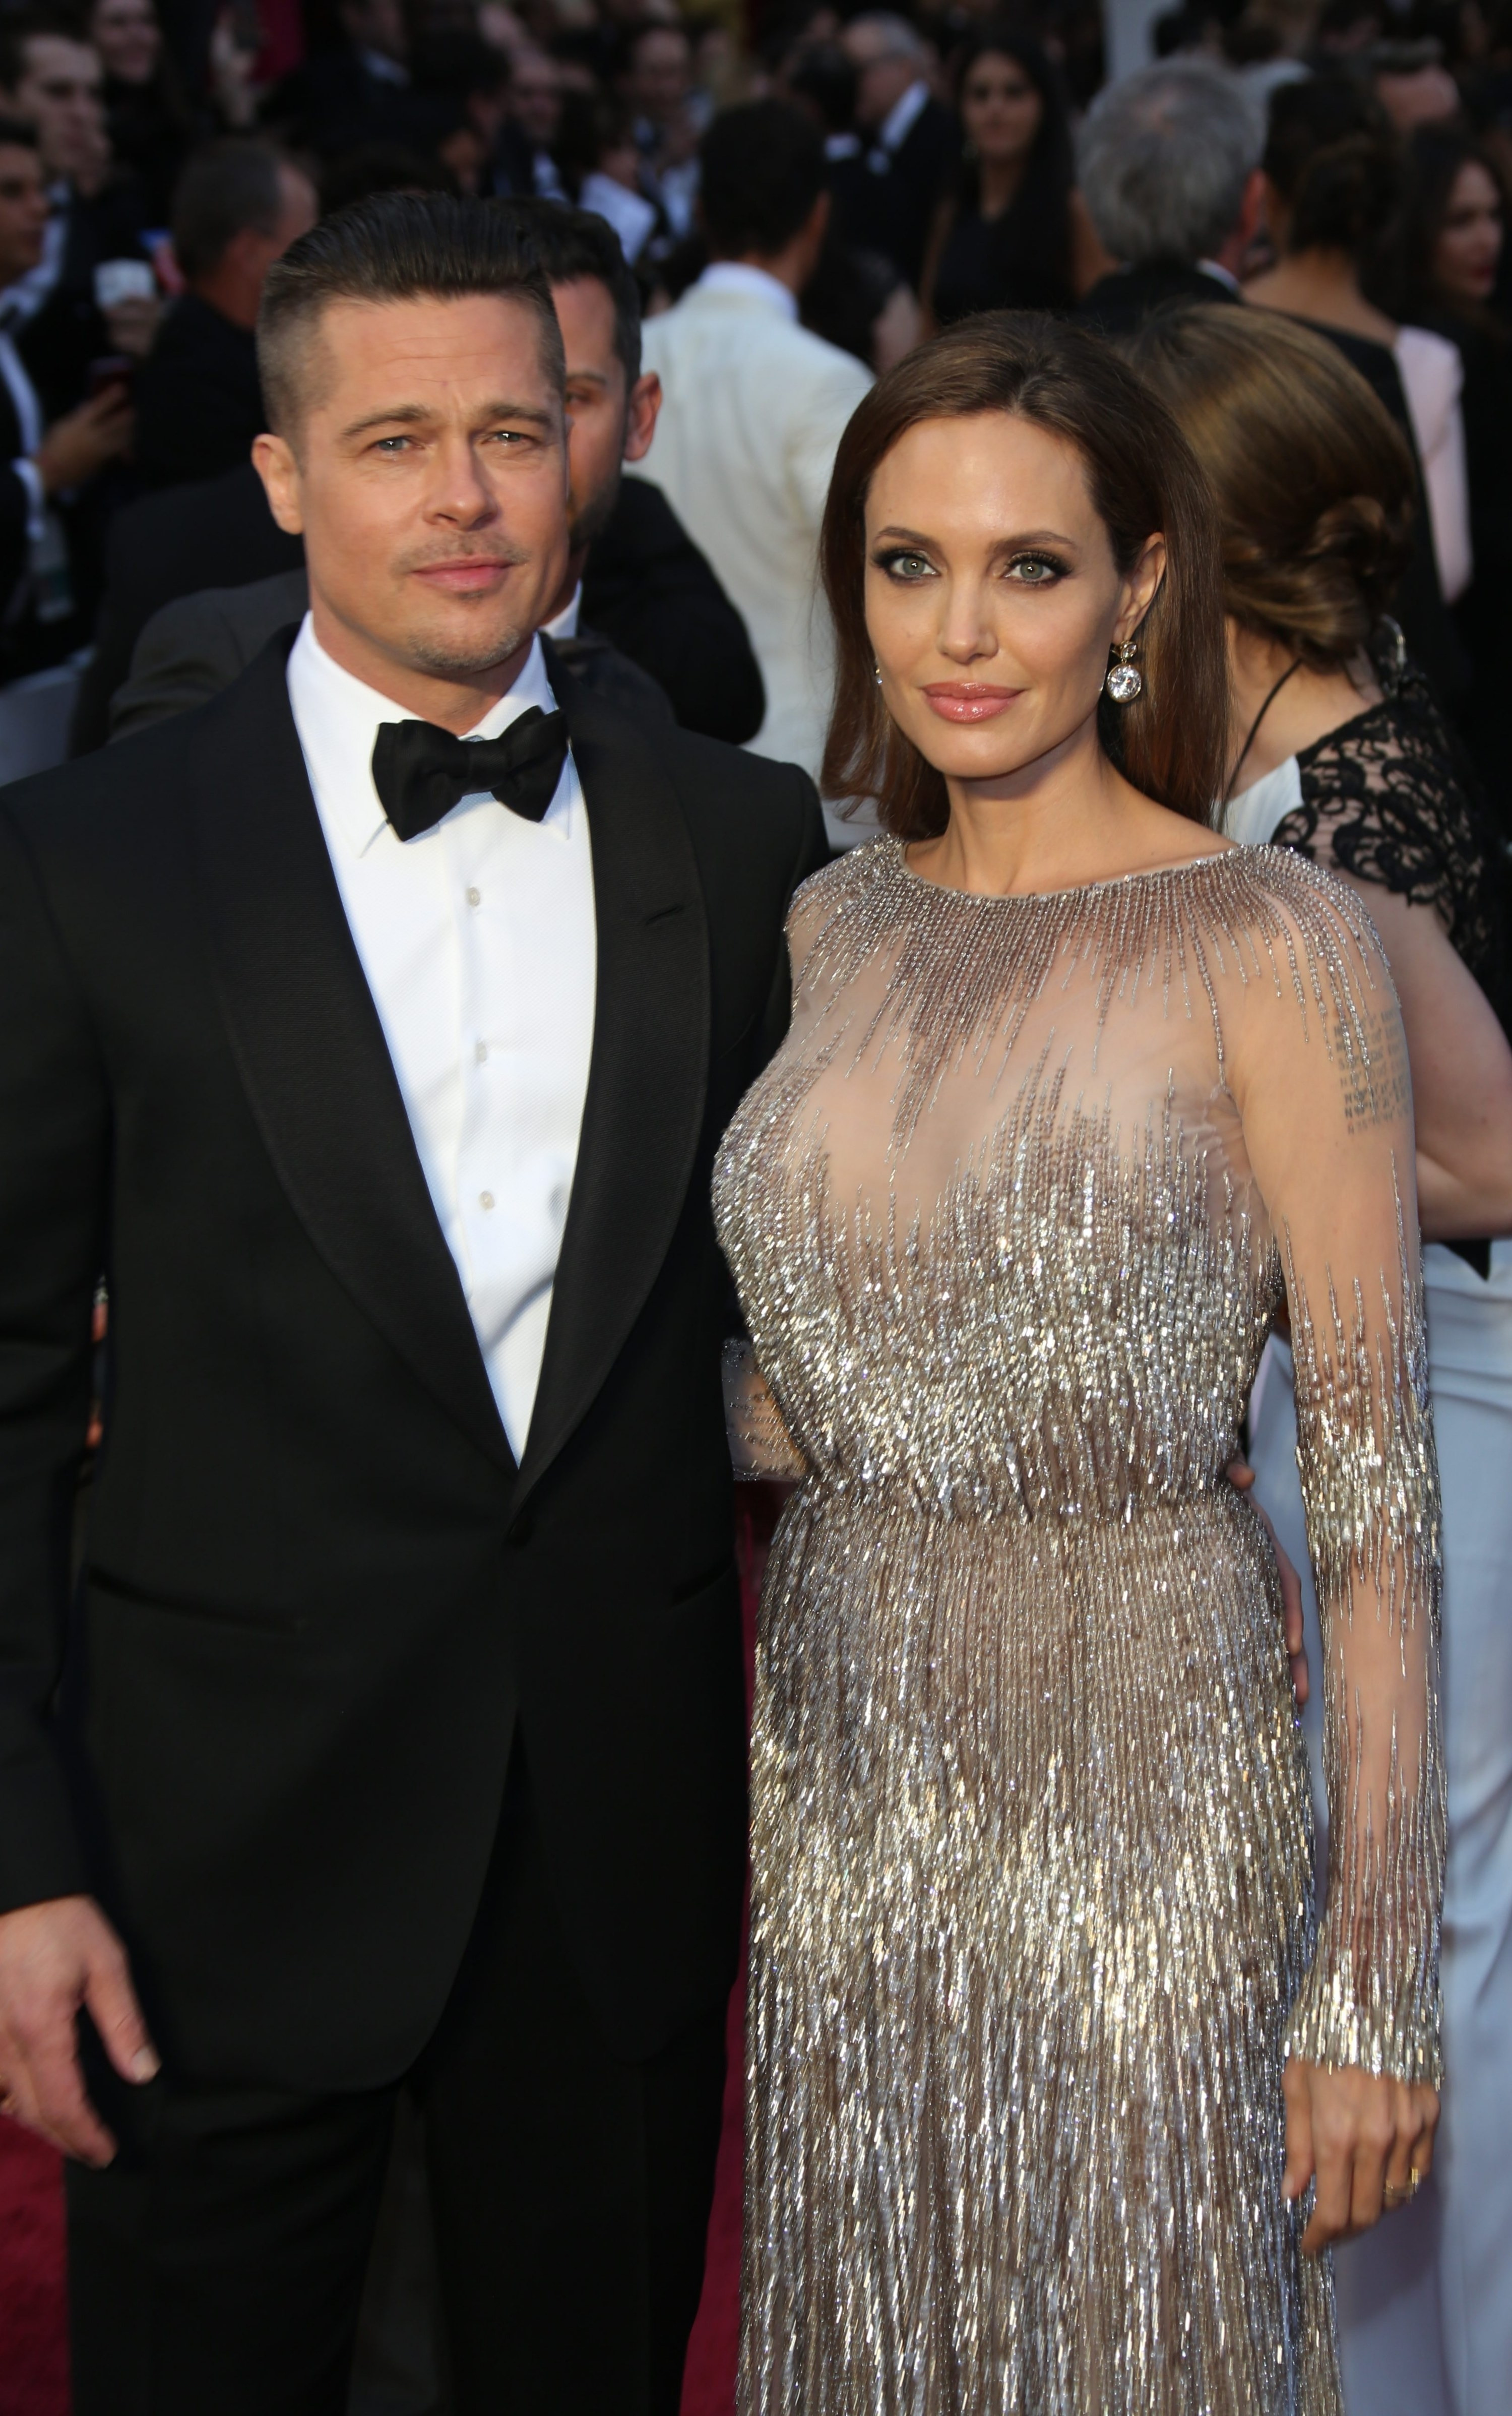 Brad and Angelina in formal attire